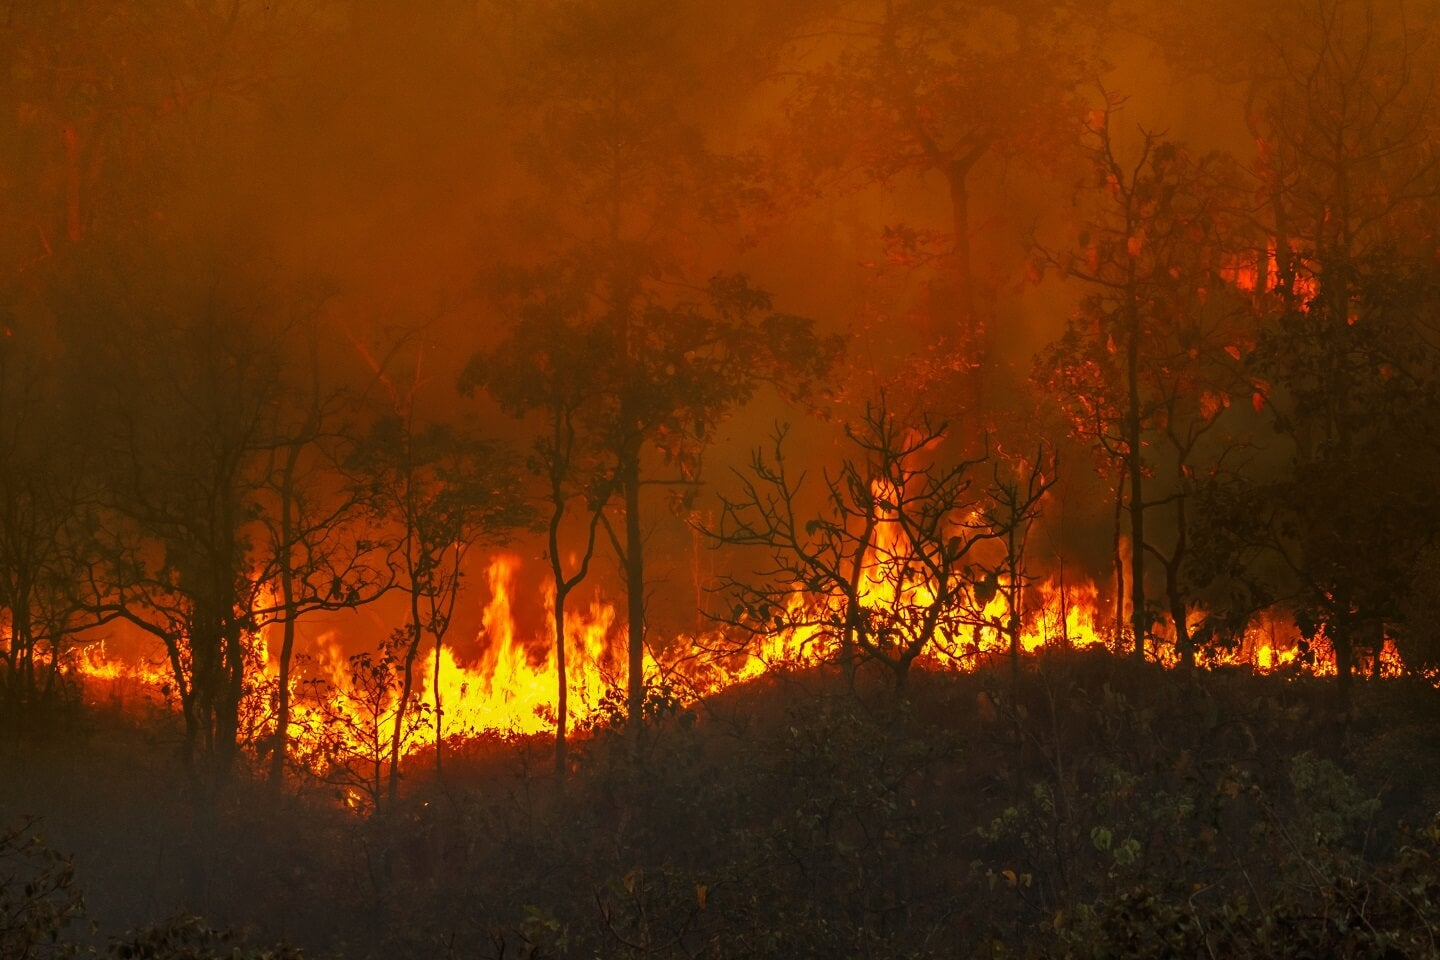 Wild fires in forest